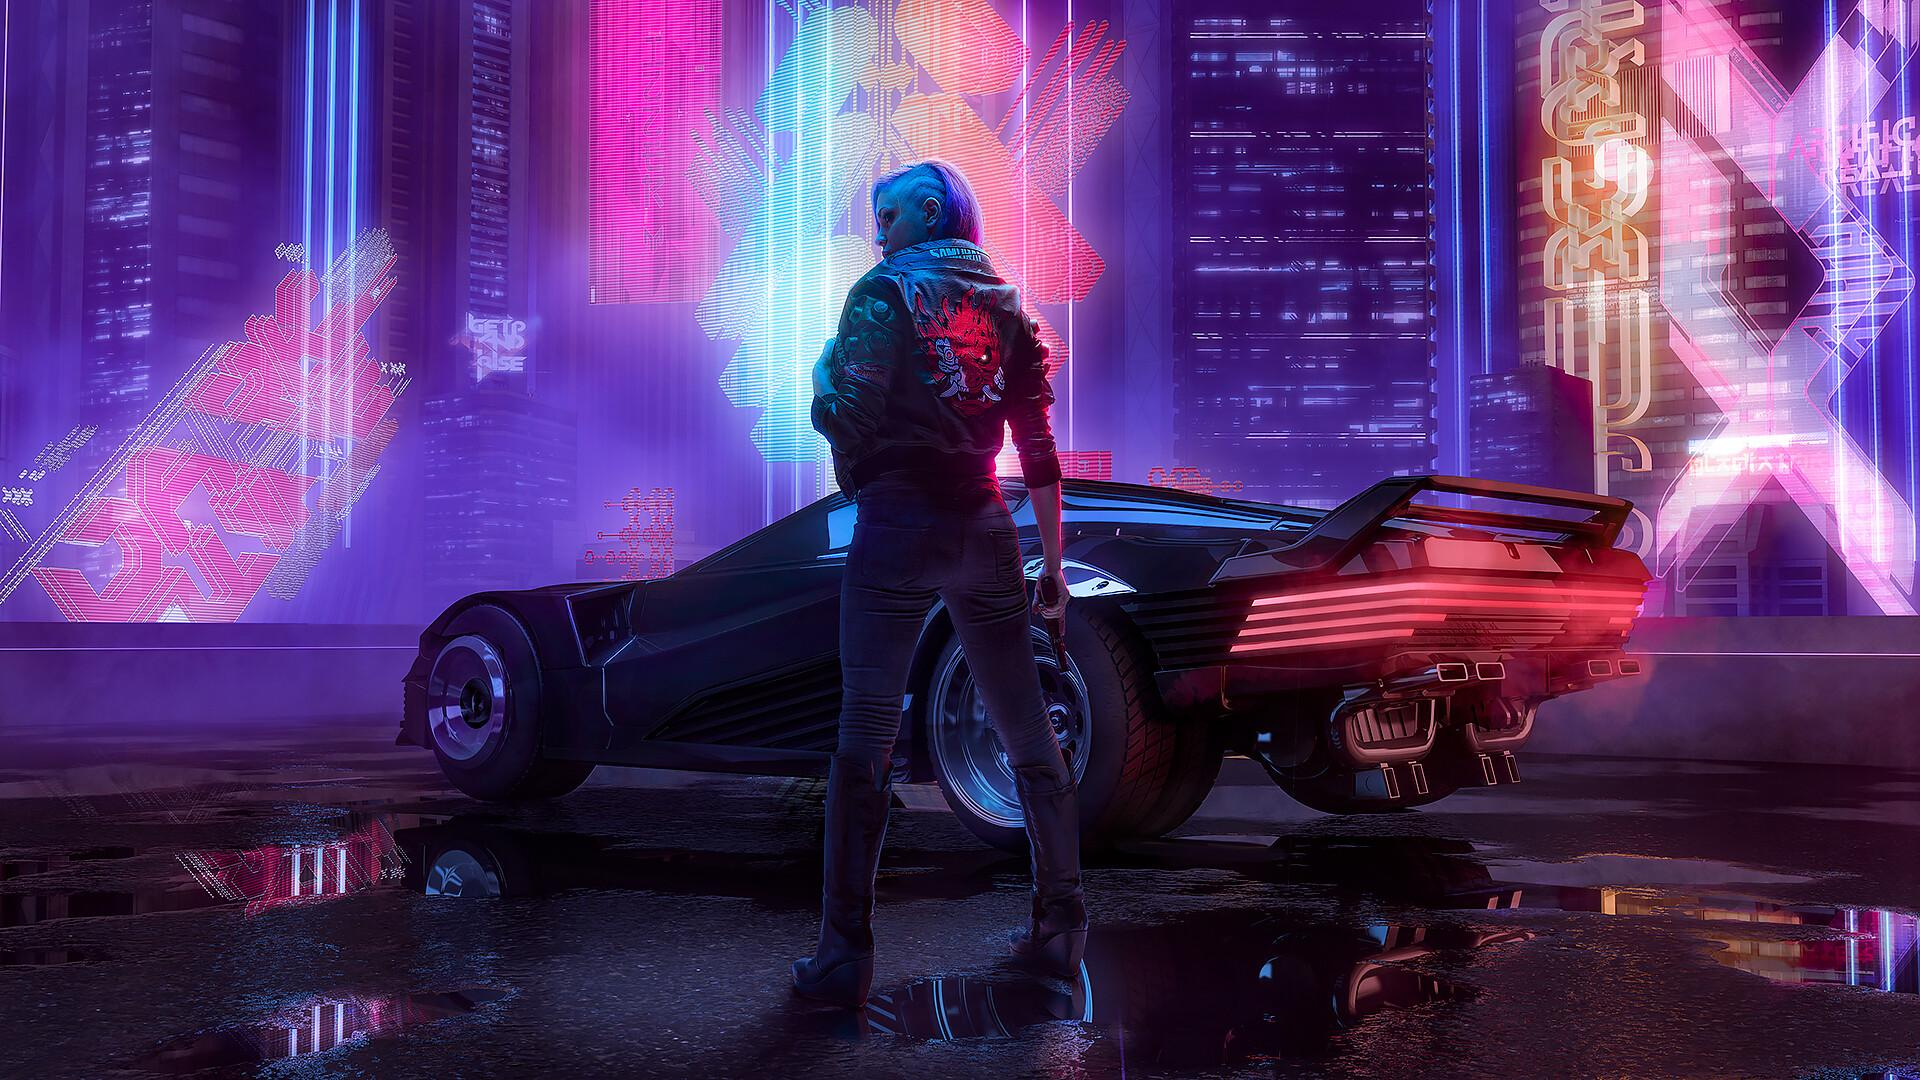 Cyberpunk 2077 Girl 4k Wallpapers Wallpaper Cave